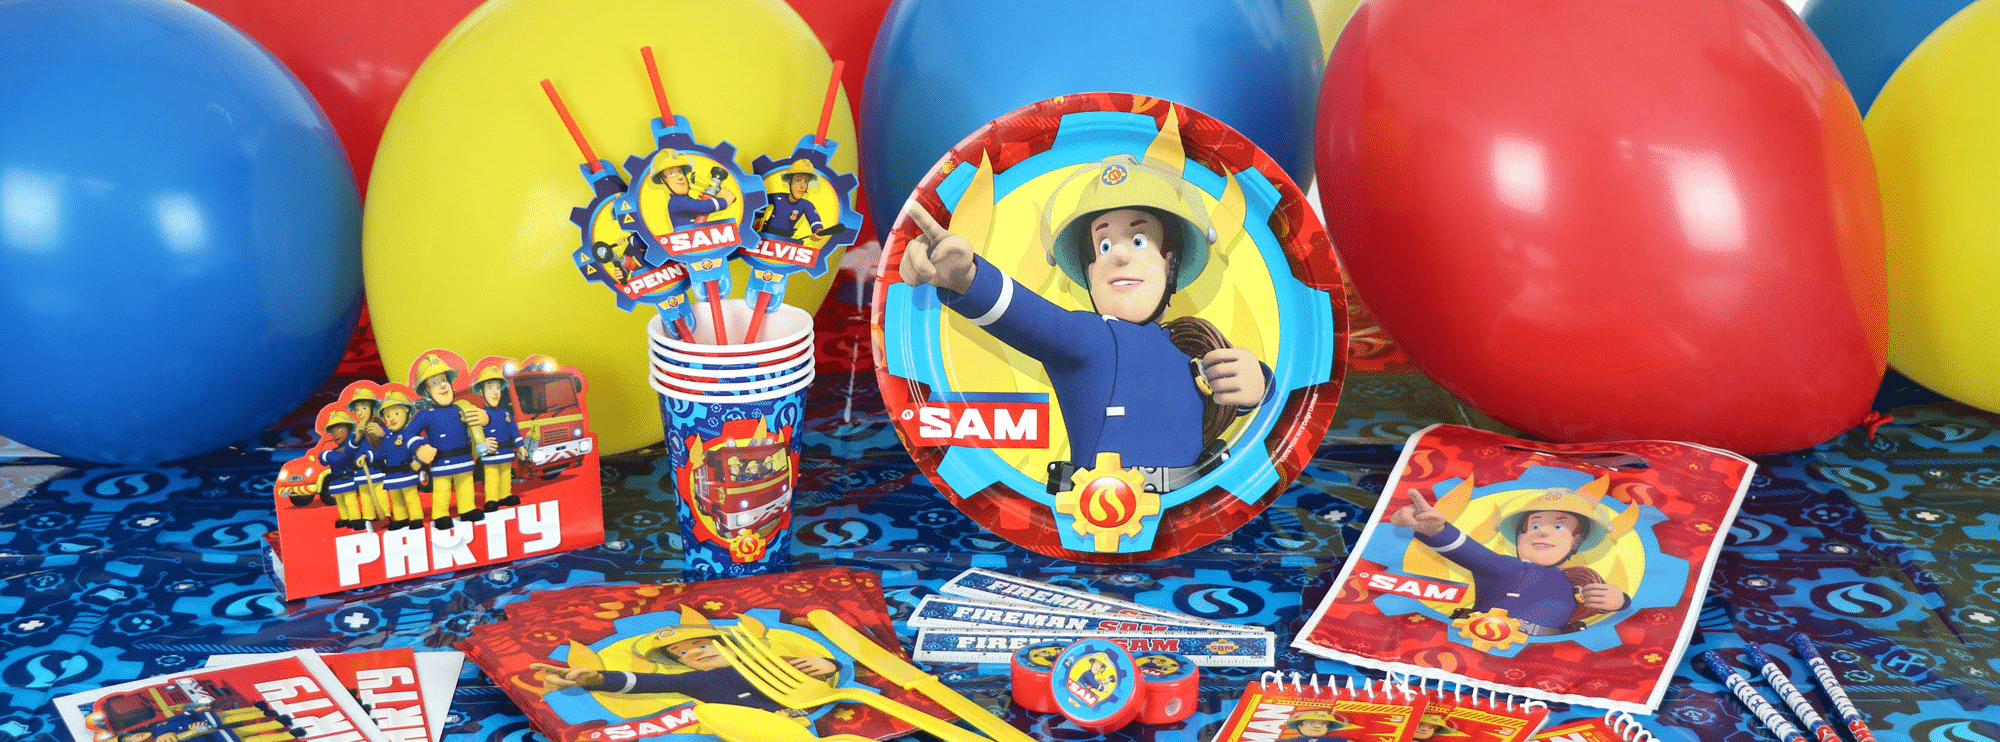 Fireman Sam themed party supplies, fireman decorations & balloons next day delivery